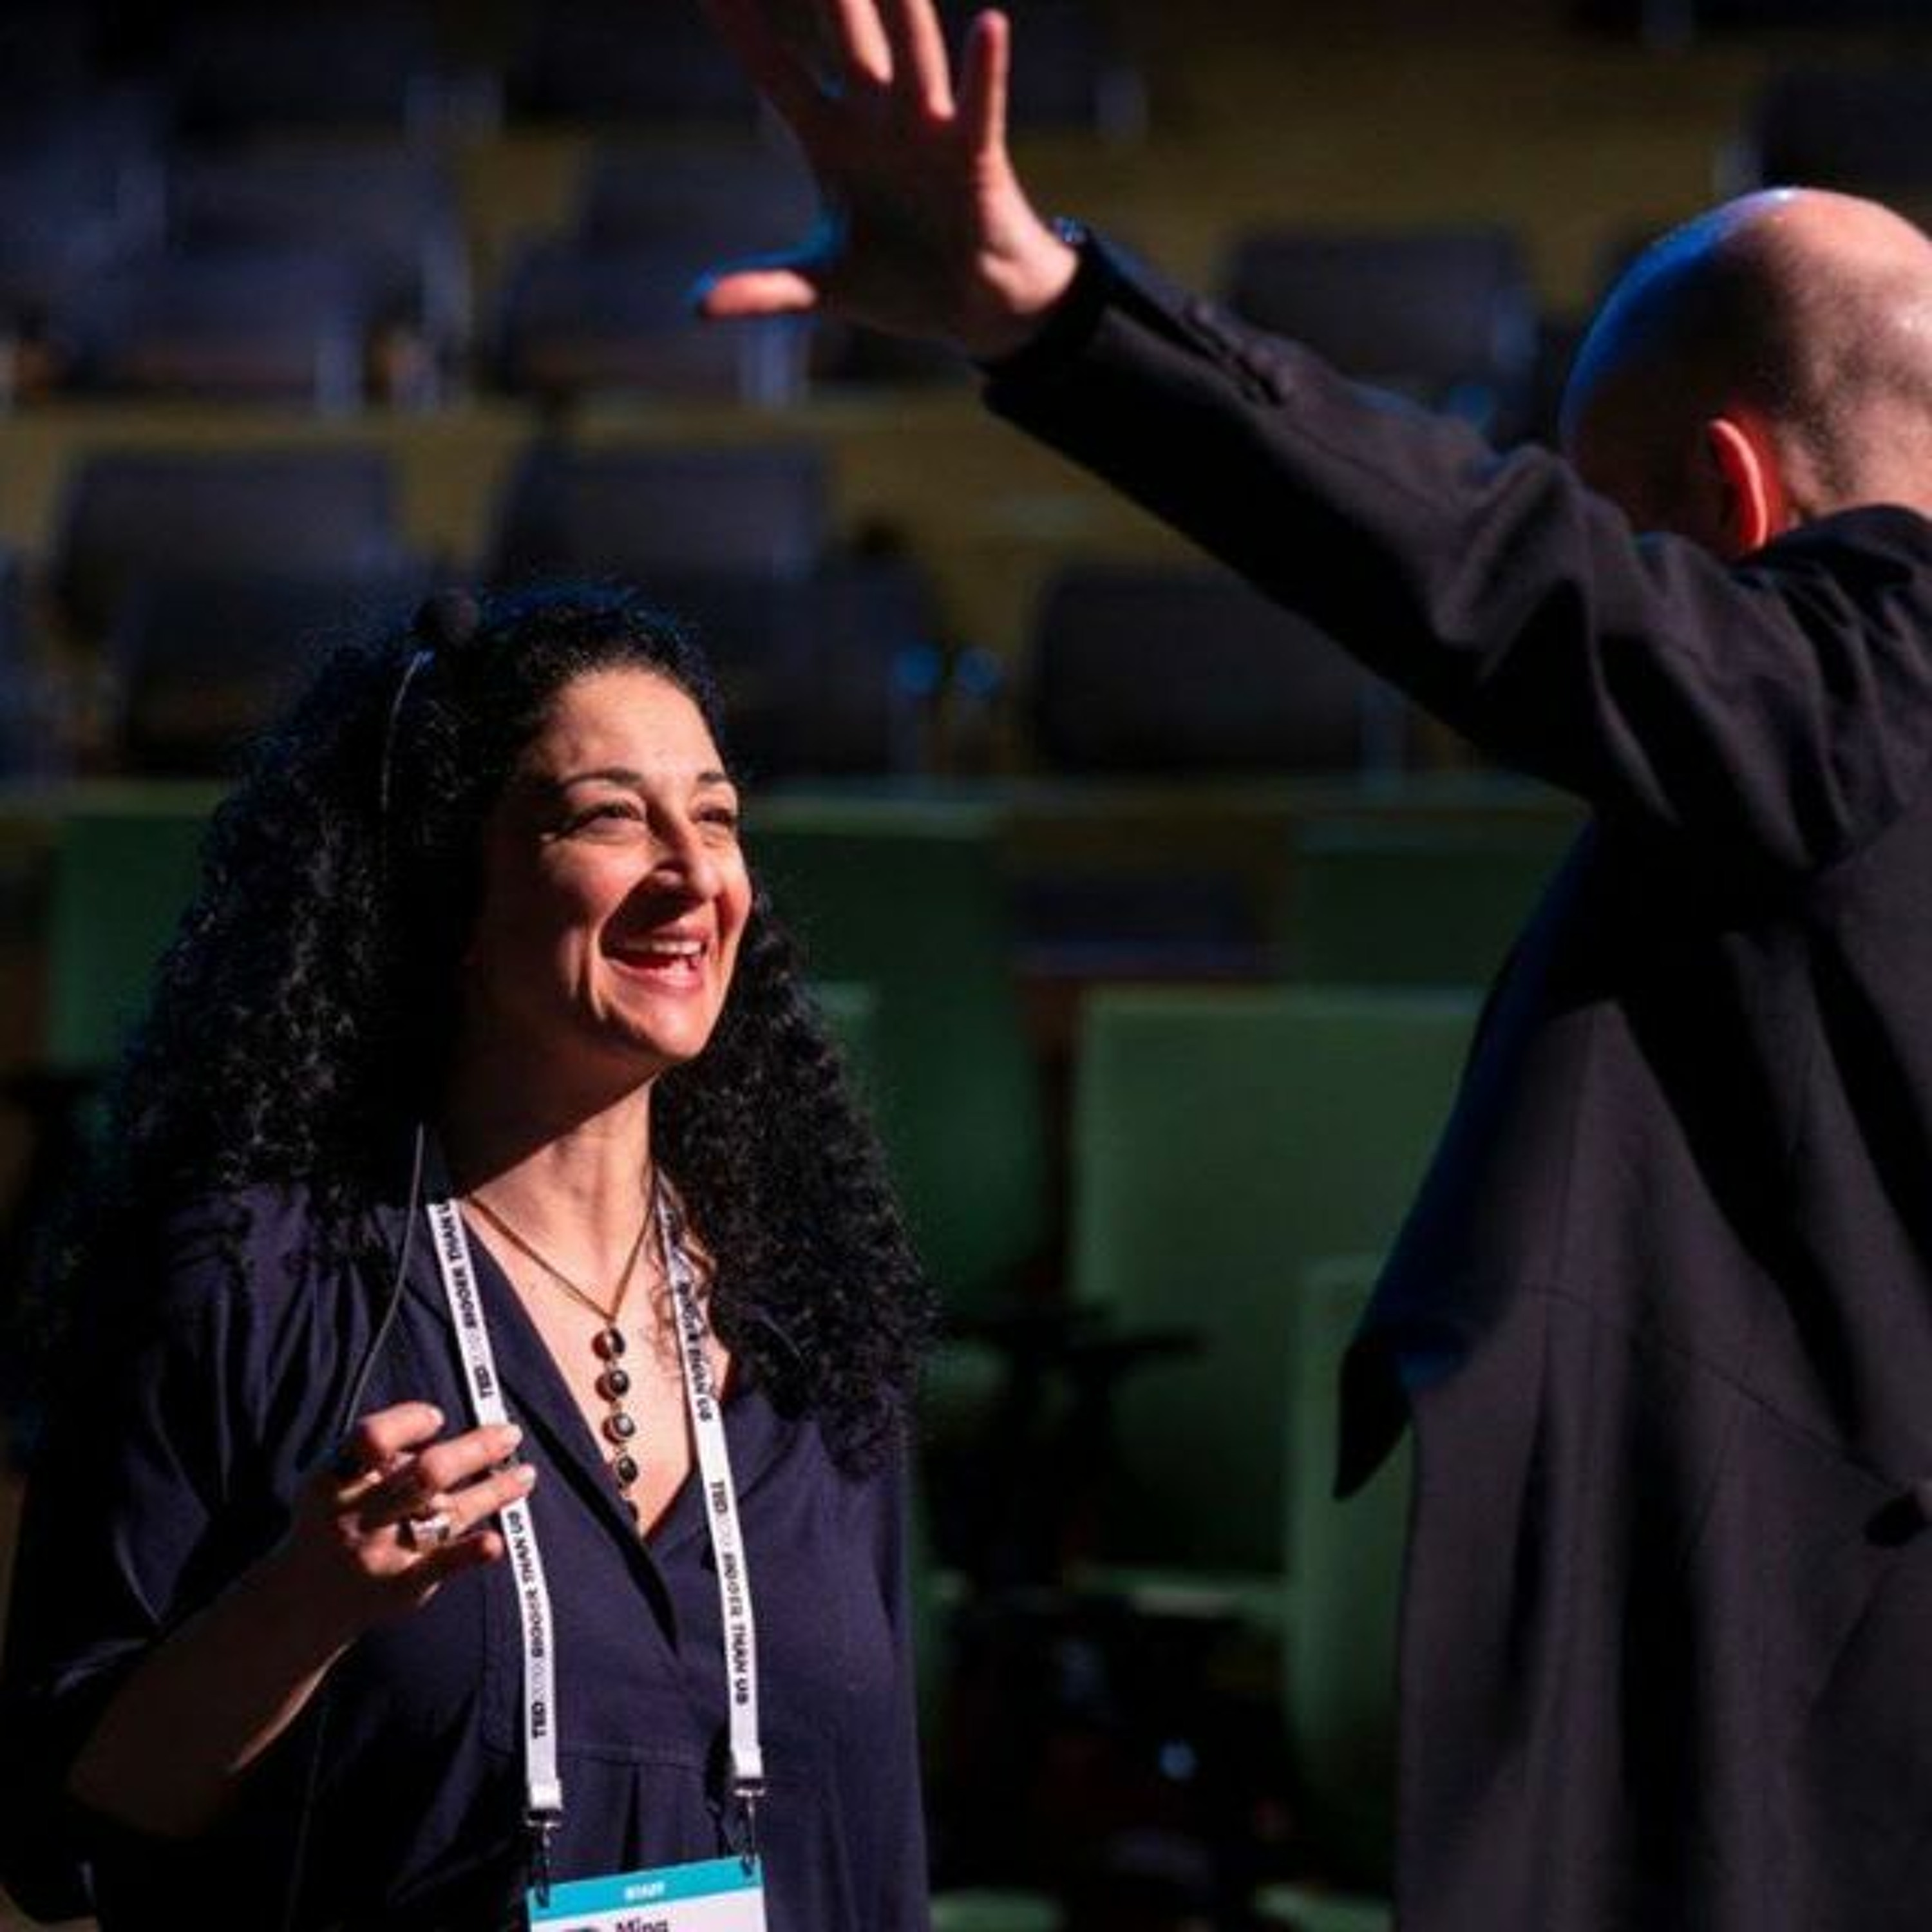 Capture your event perfectly — Mina Sabet, Director of Production and Video Operations, TED